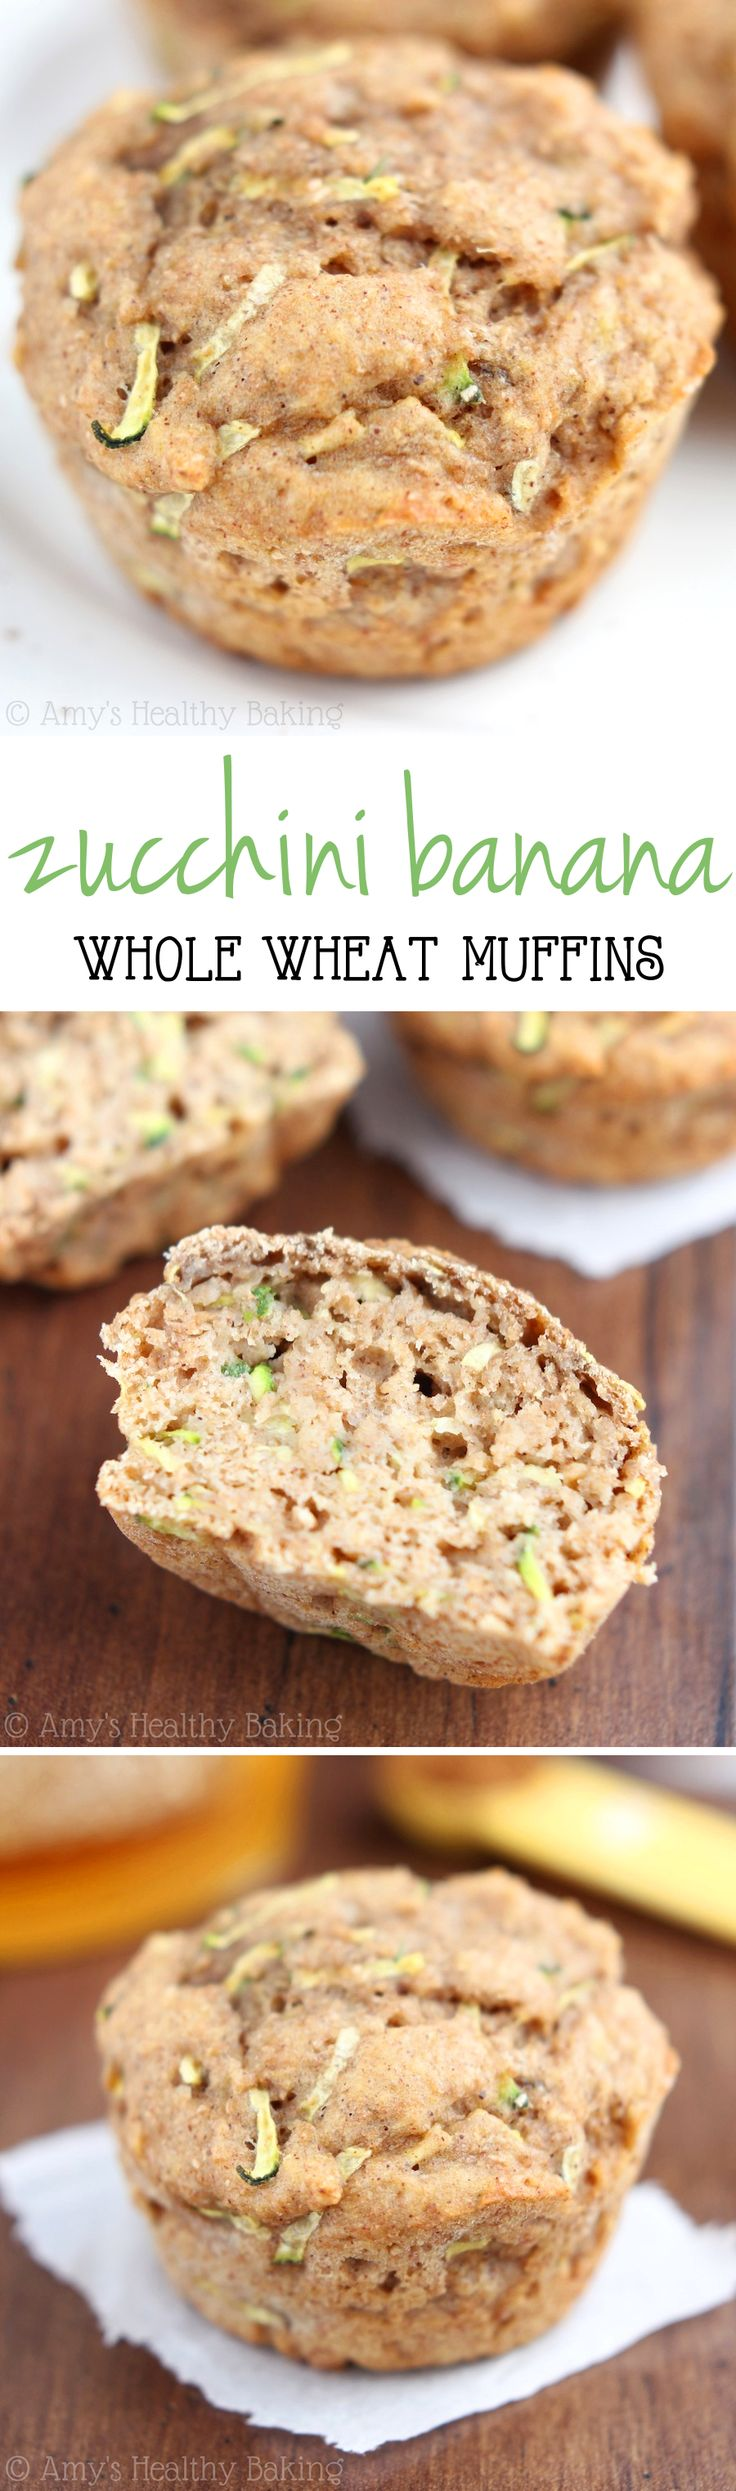 Whole Wheat Zucchini Banana Muffins -- an easy clean-eating breakfast! So tender & barely 125 calories!